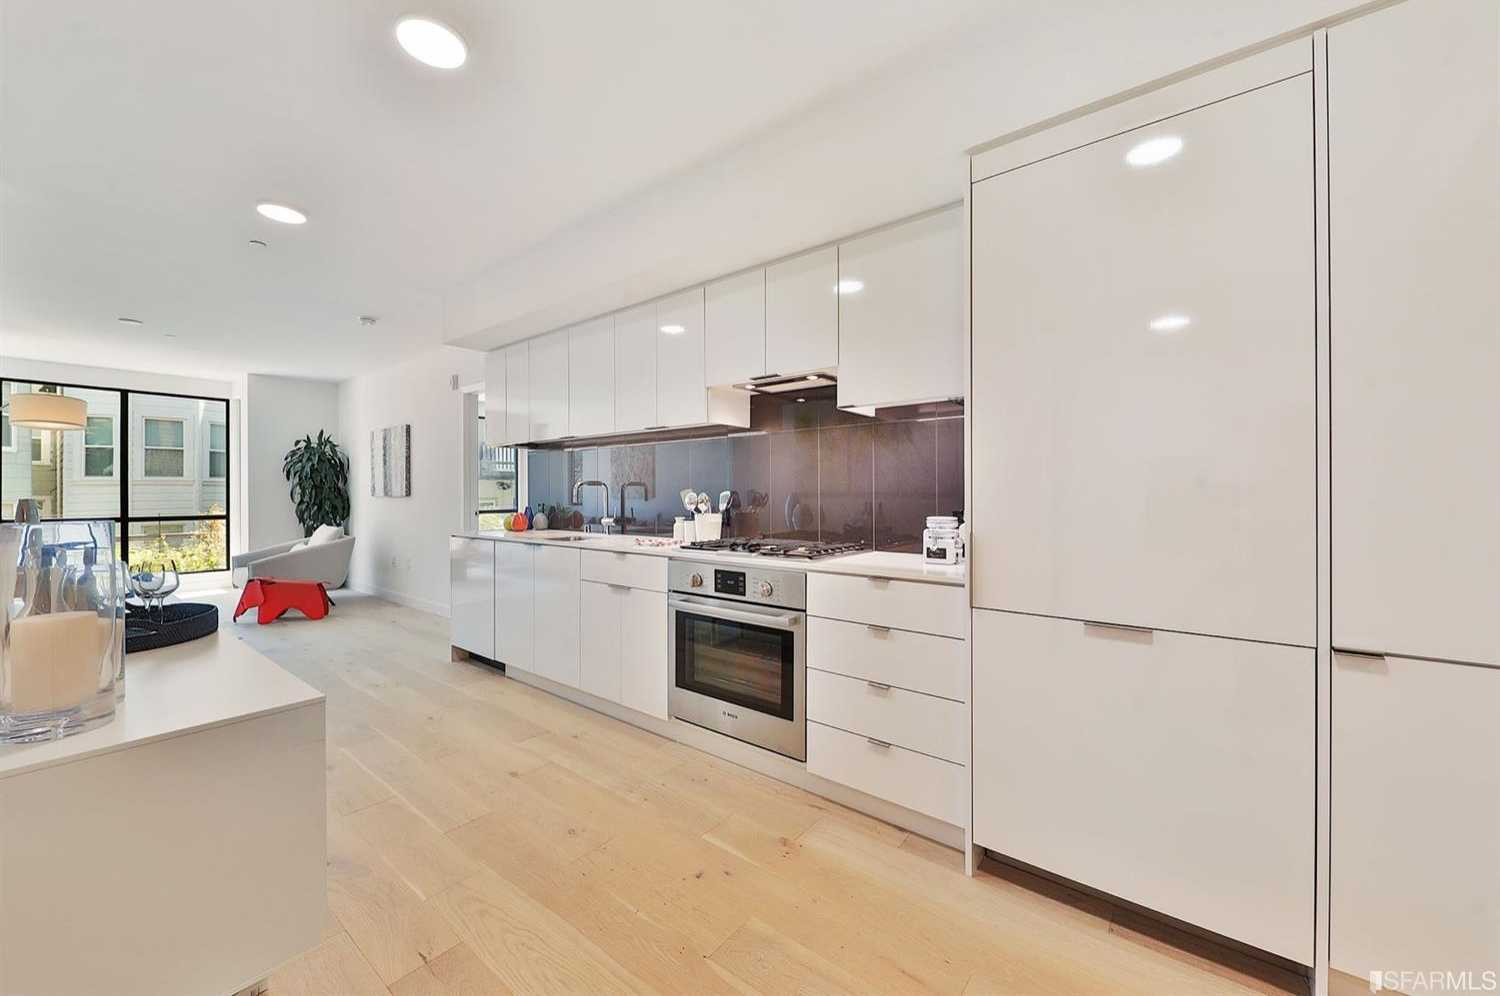 $1,369,000 - 2Br/2Ba -  for Sale in San Francisco